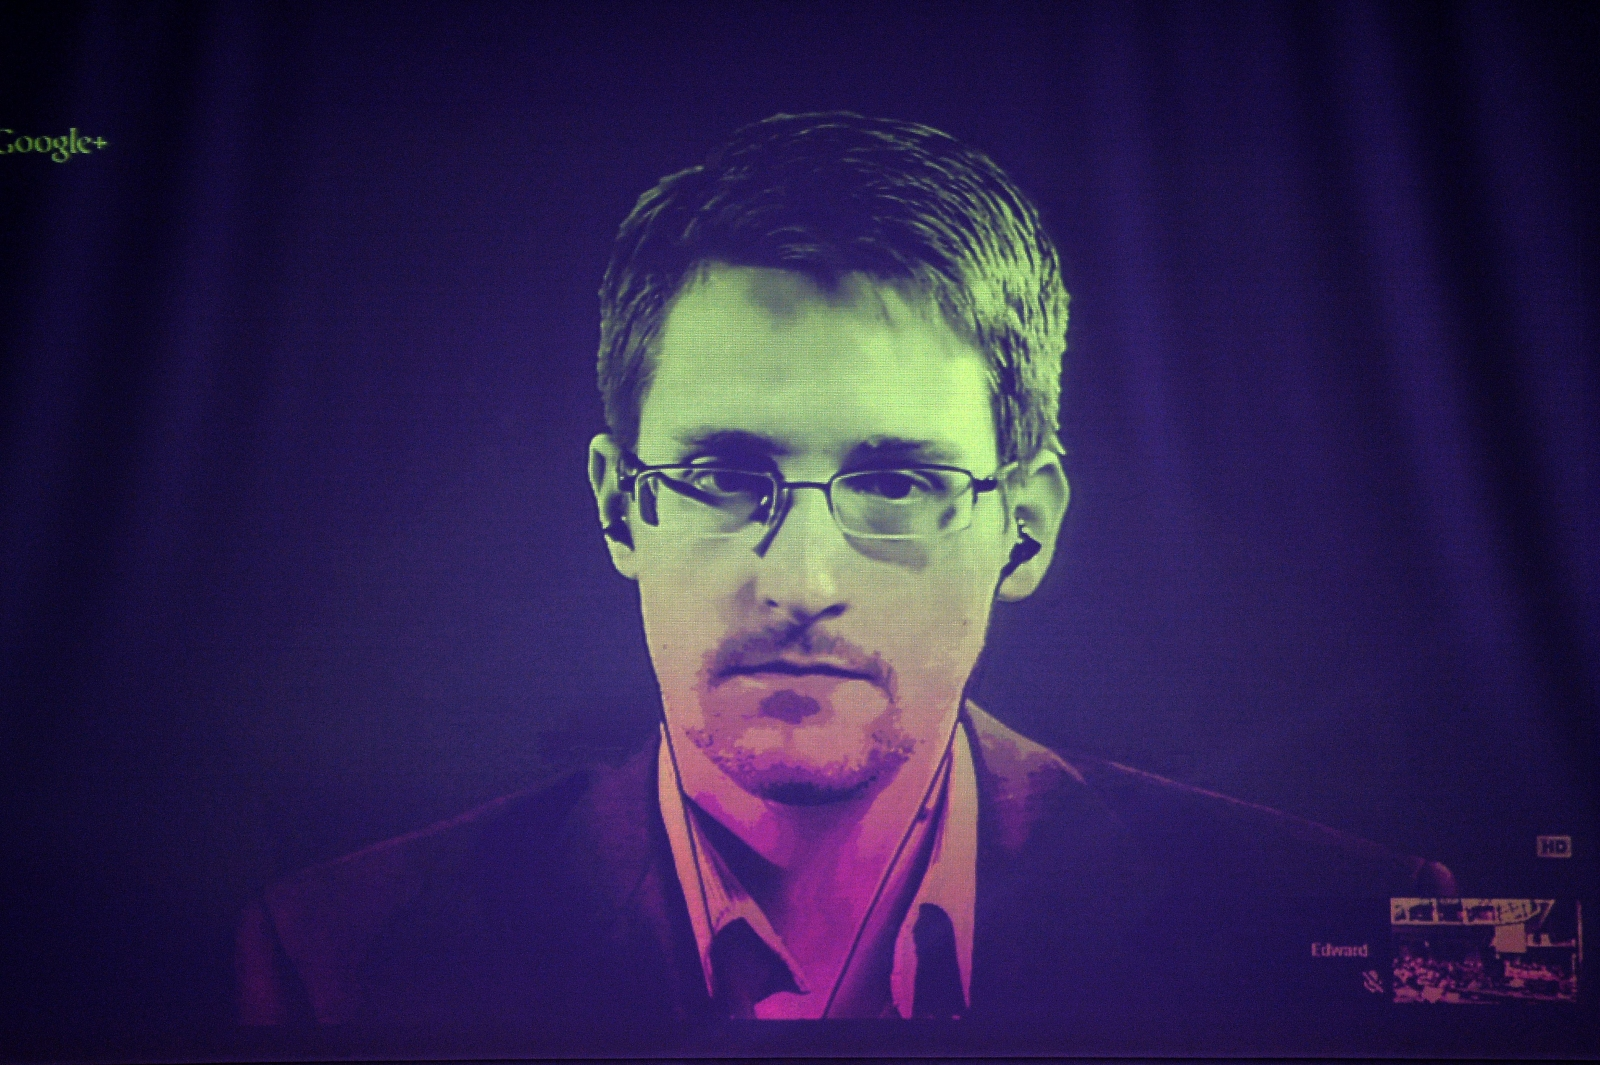 Edward Snowden planning return to USA?